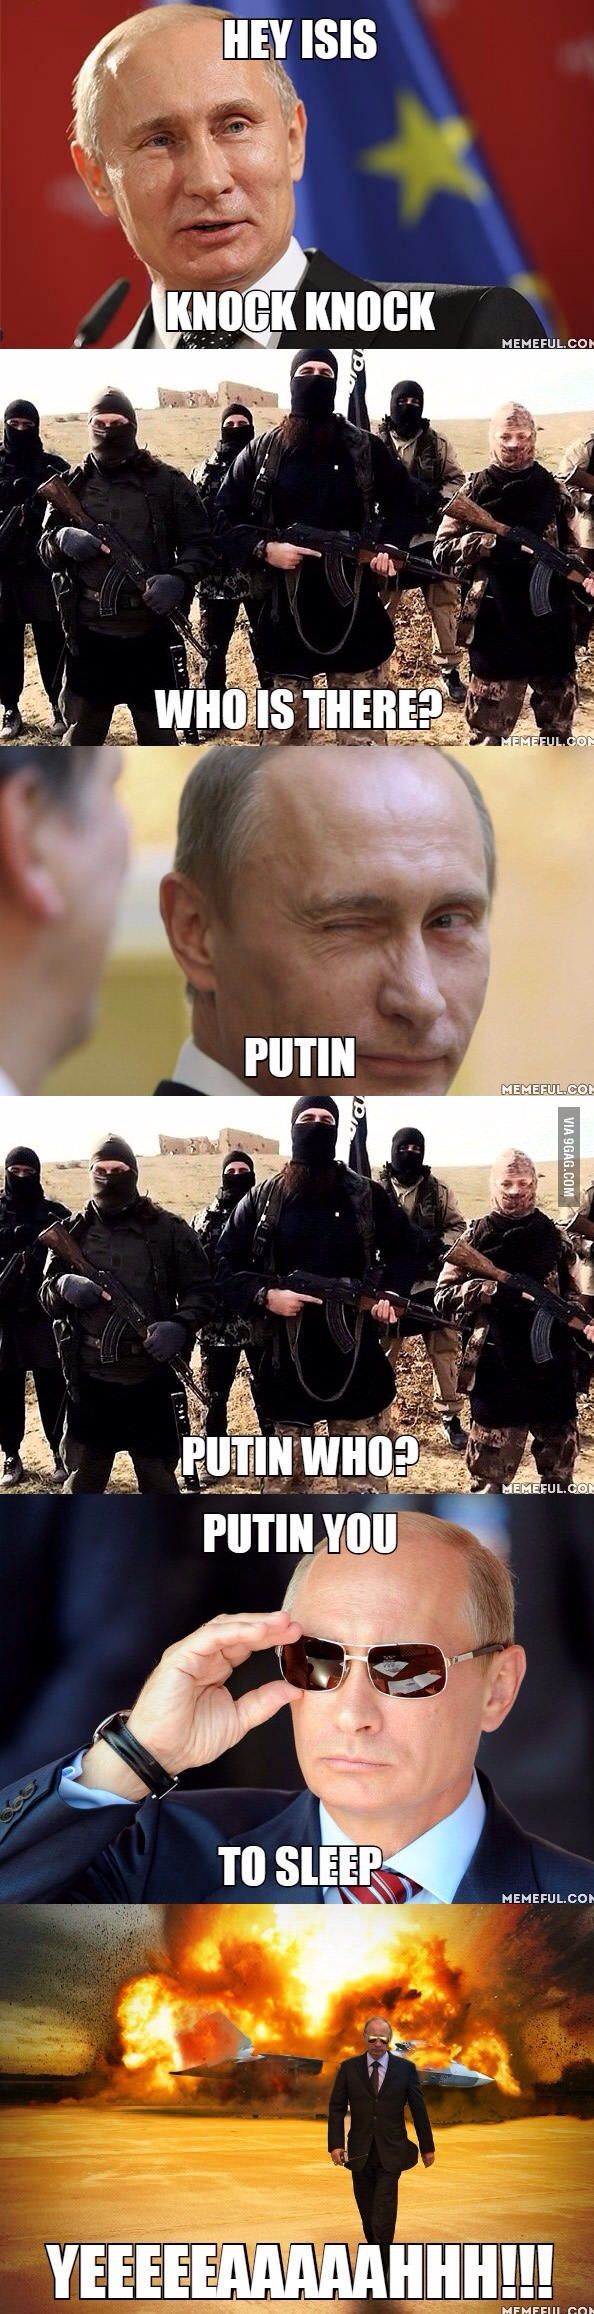 Putin memes are EVERYWHERE ON MY FEED